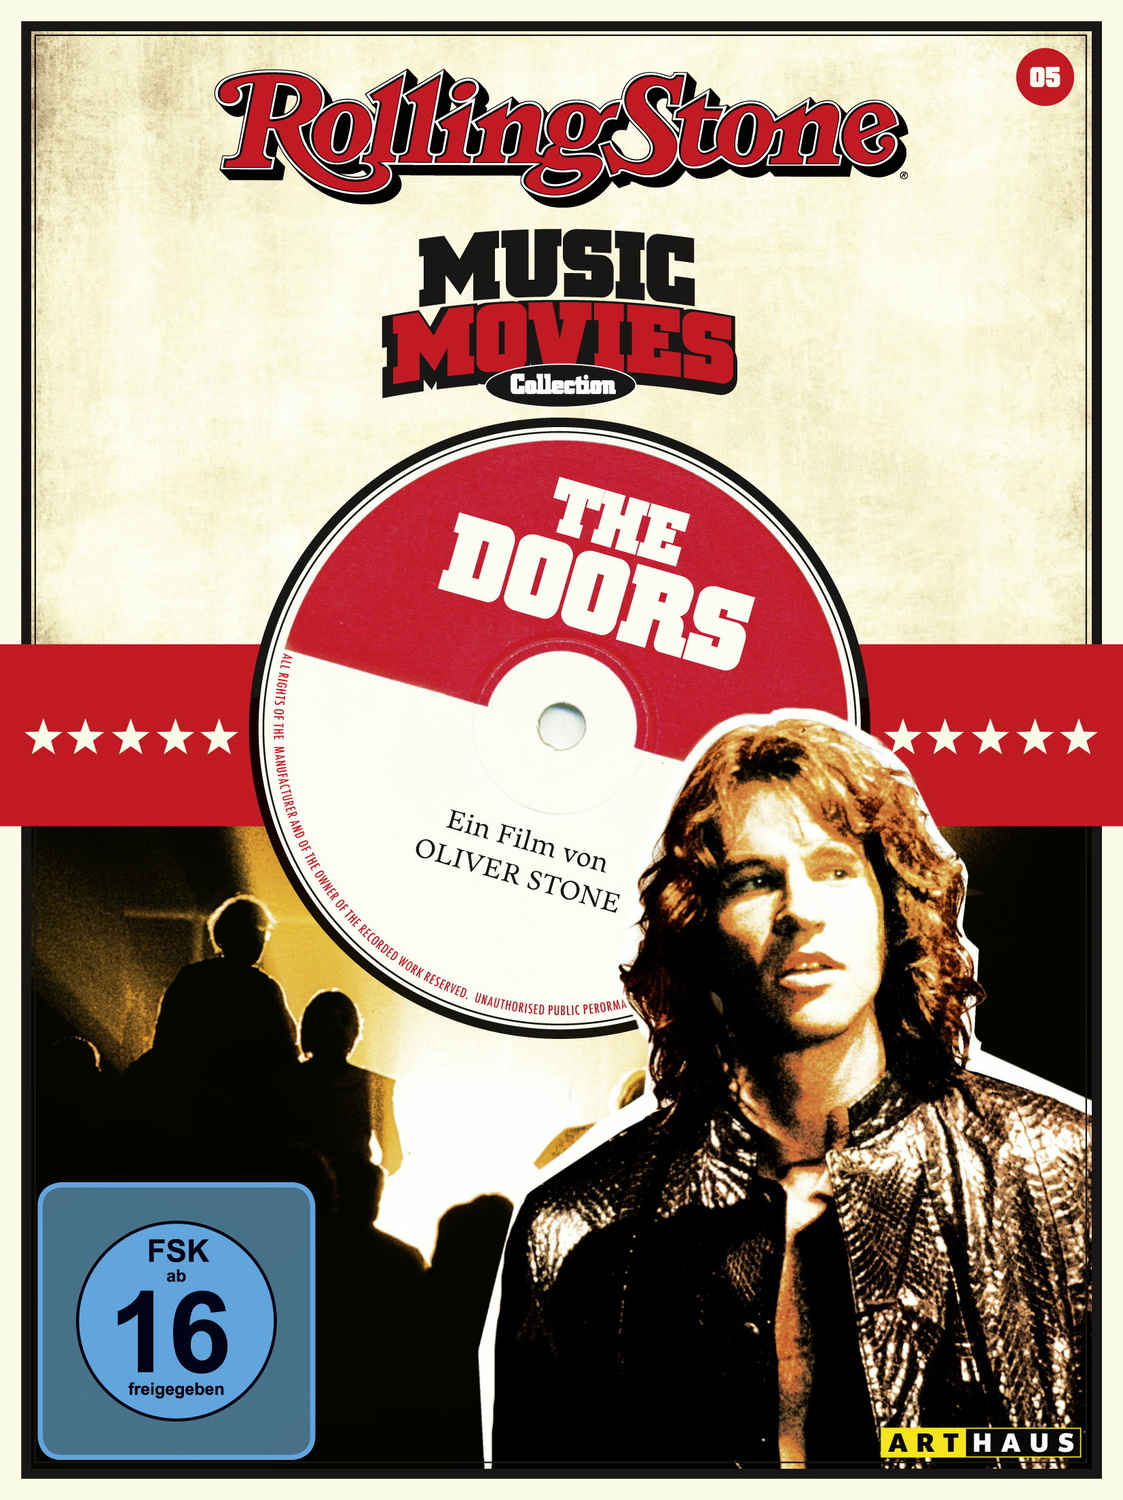 Doors, The - Rolling Stone Music Movies Collection